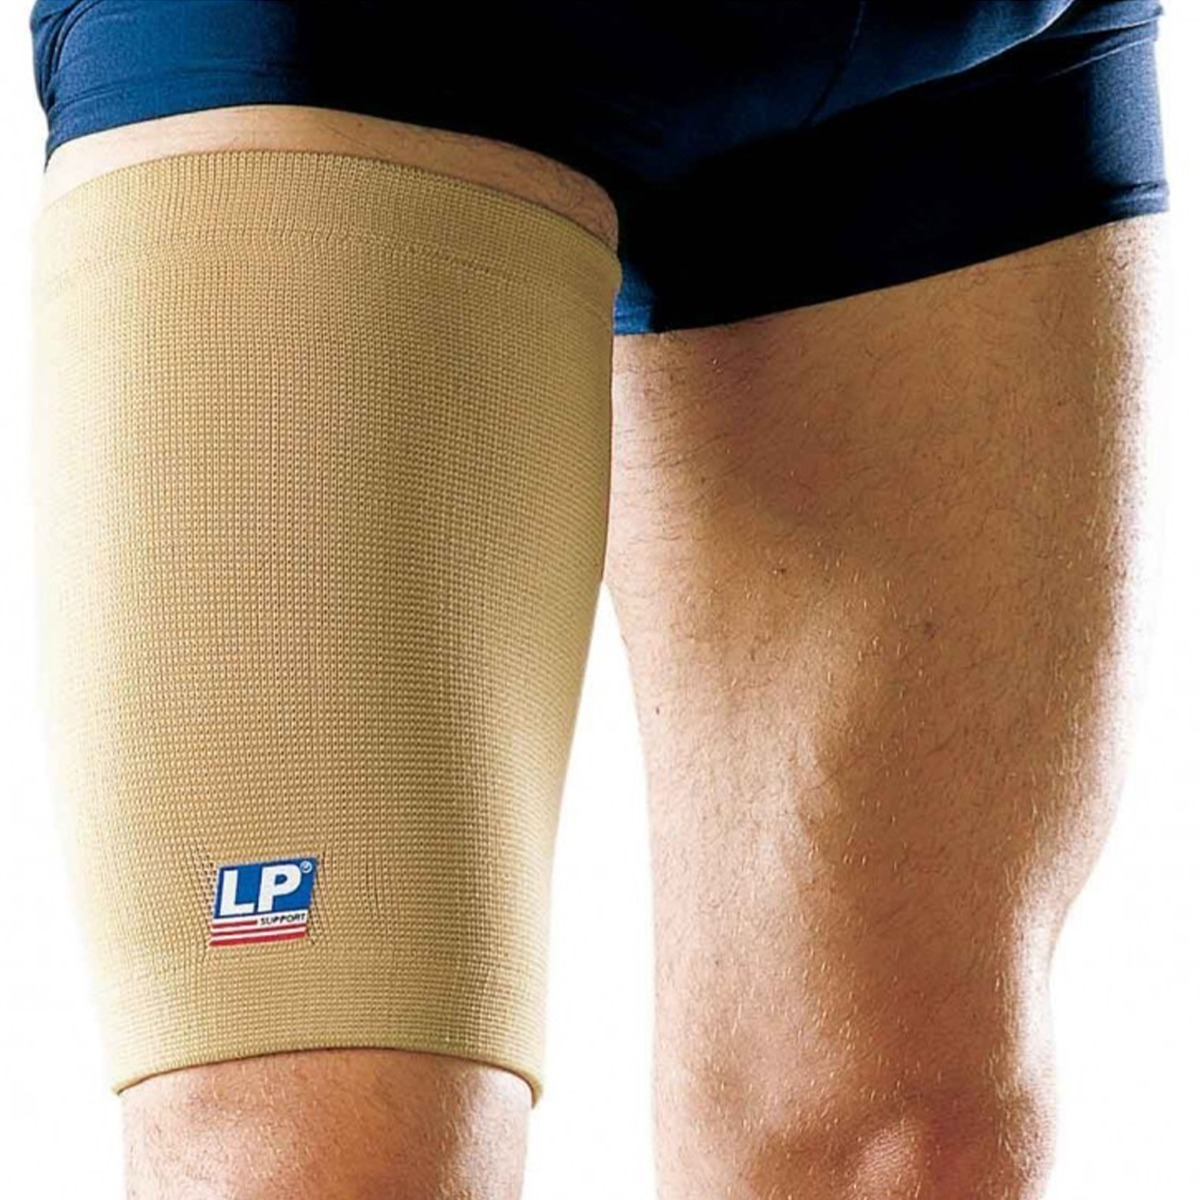 Thigh Support 952 - LP Support